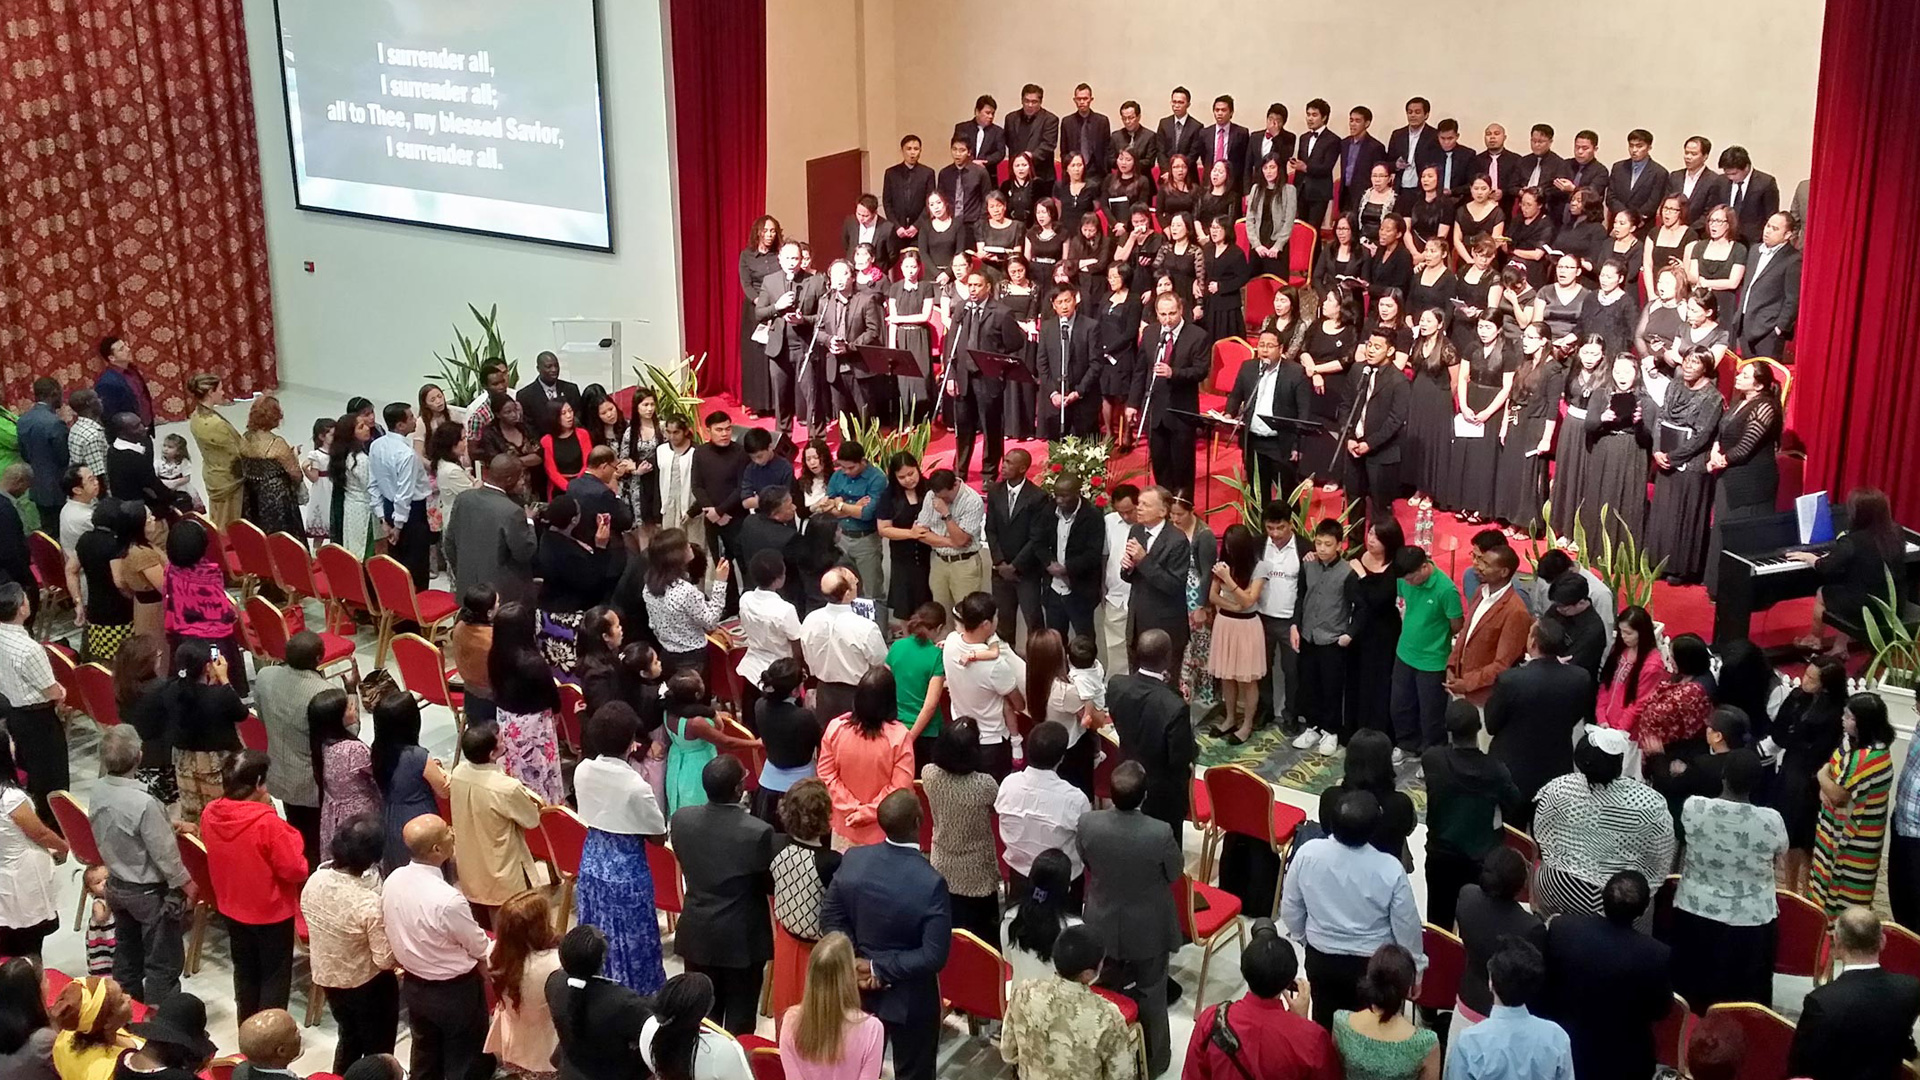 The Seventh-Day Adventist Church's annual Campmeeting event.